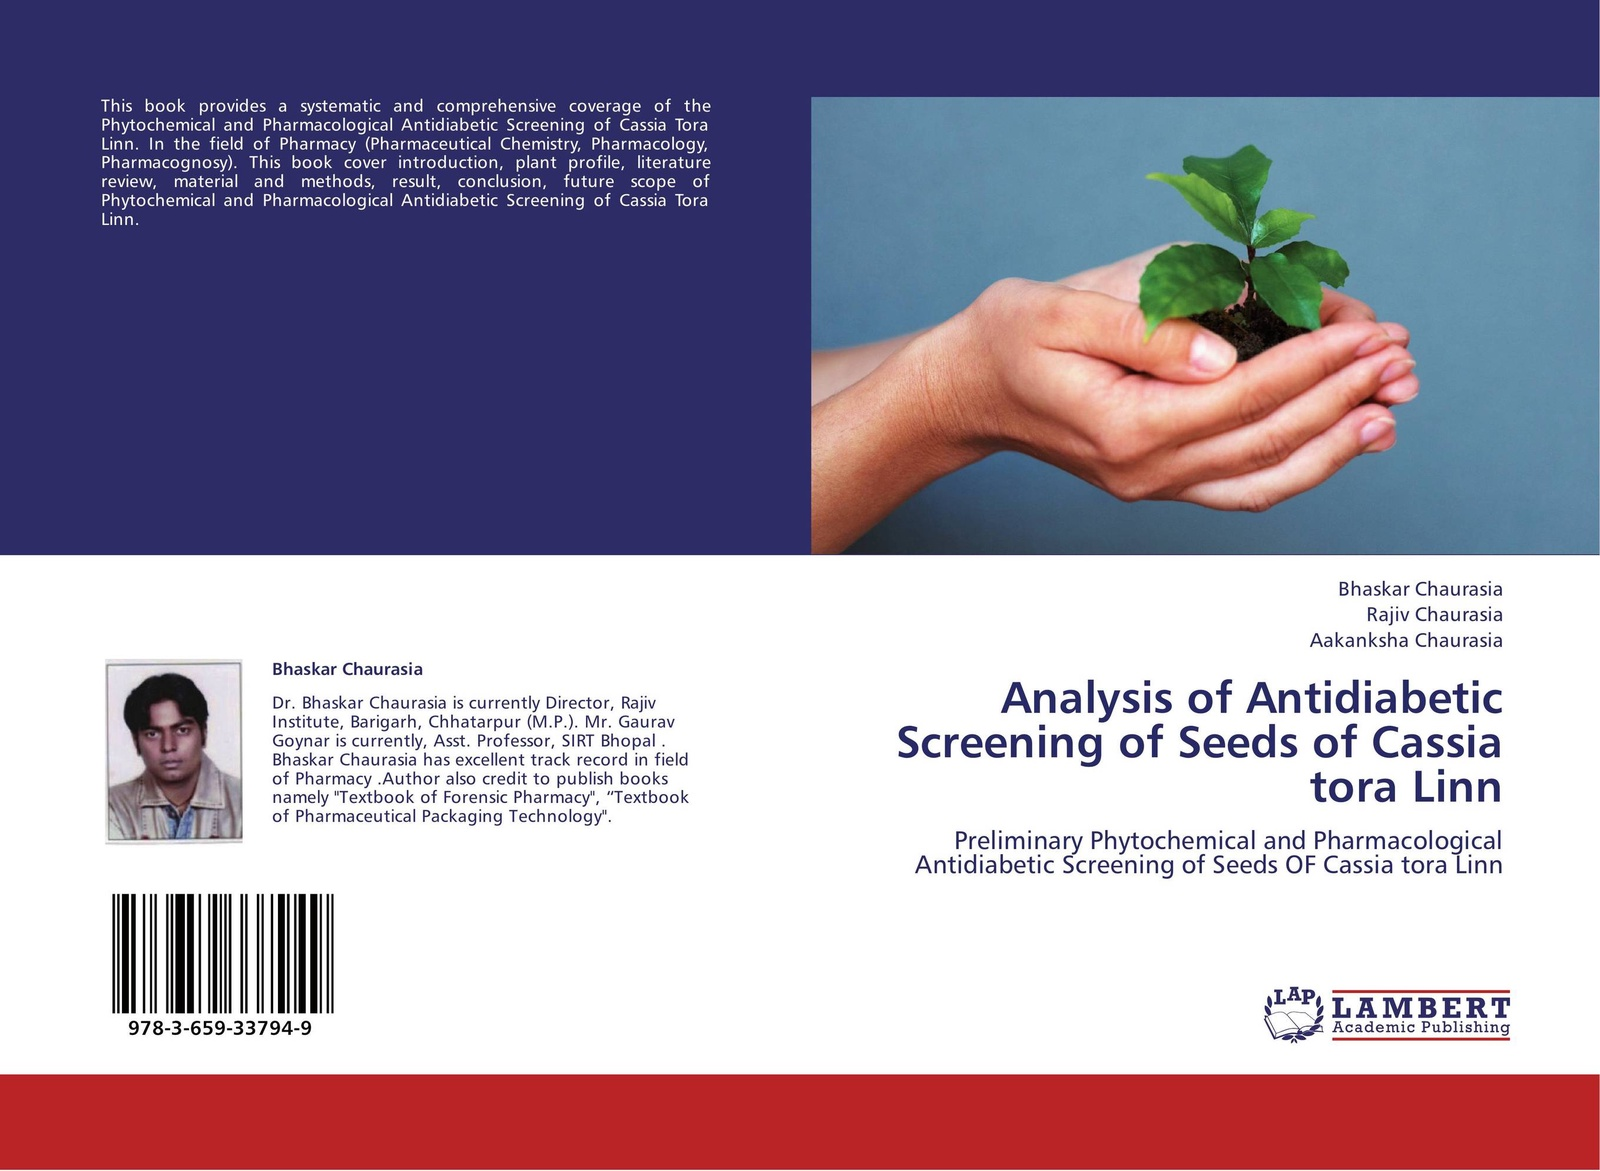 Bhaskar Chaurasia,Rajiv Chaurasia and Aakanksha Chaurasia Analysis of Antidiabetic Screening of Seeds of Cassia tora Linn цена 2017